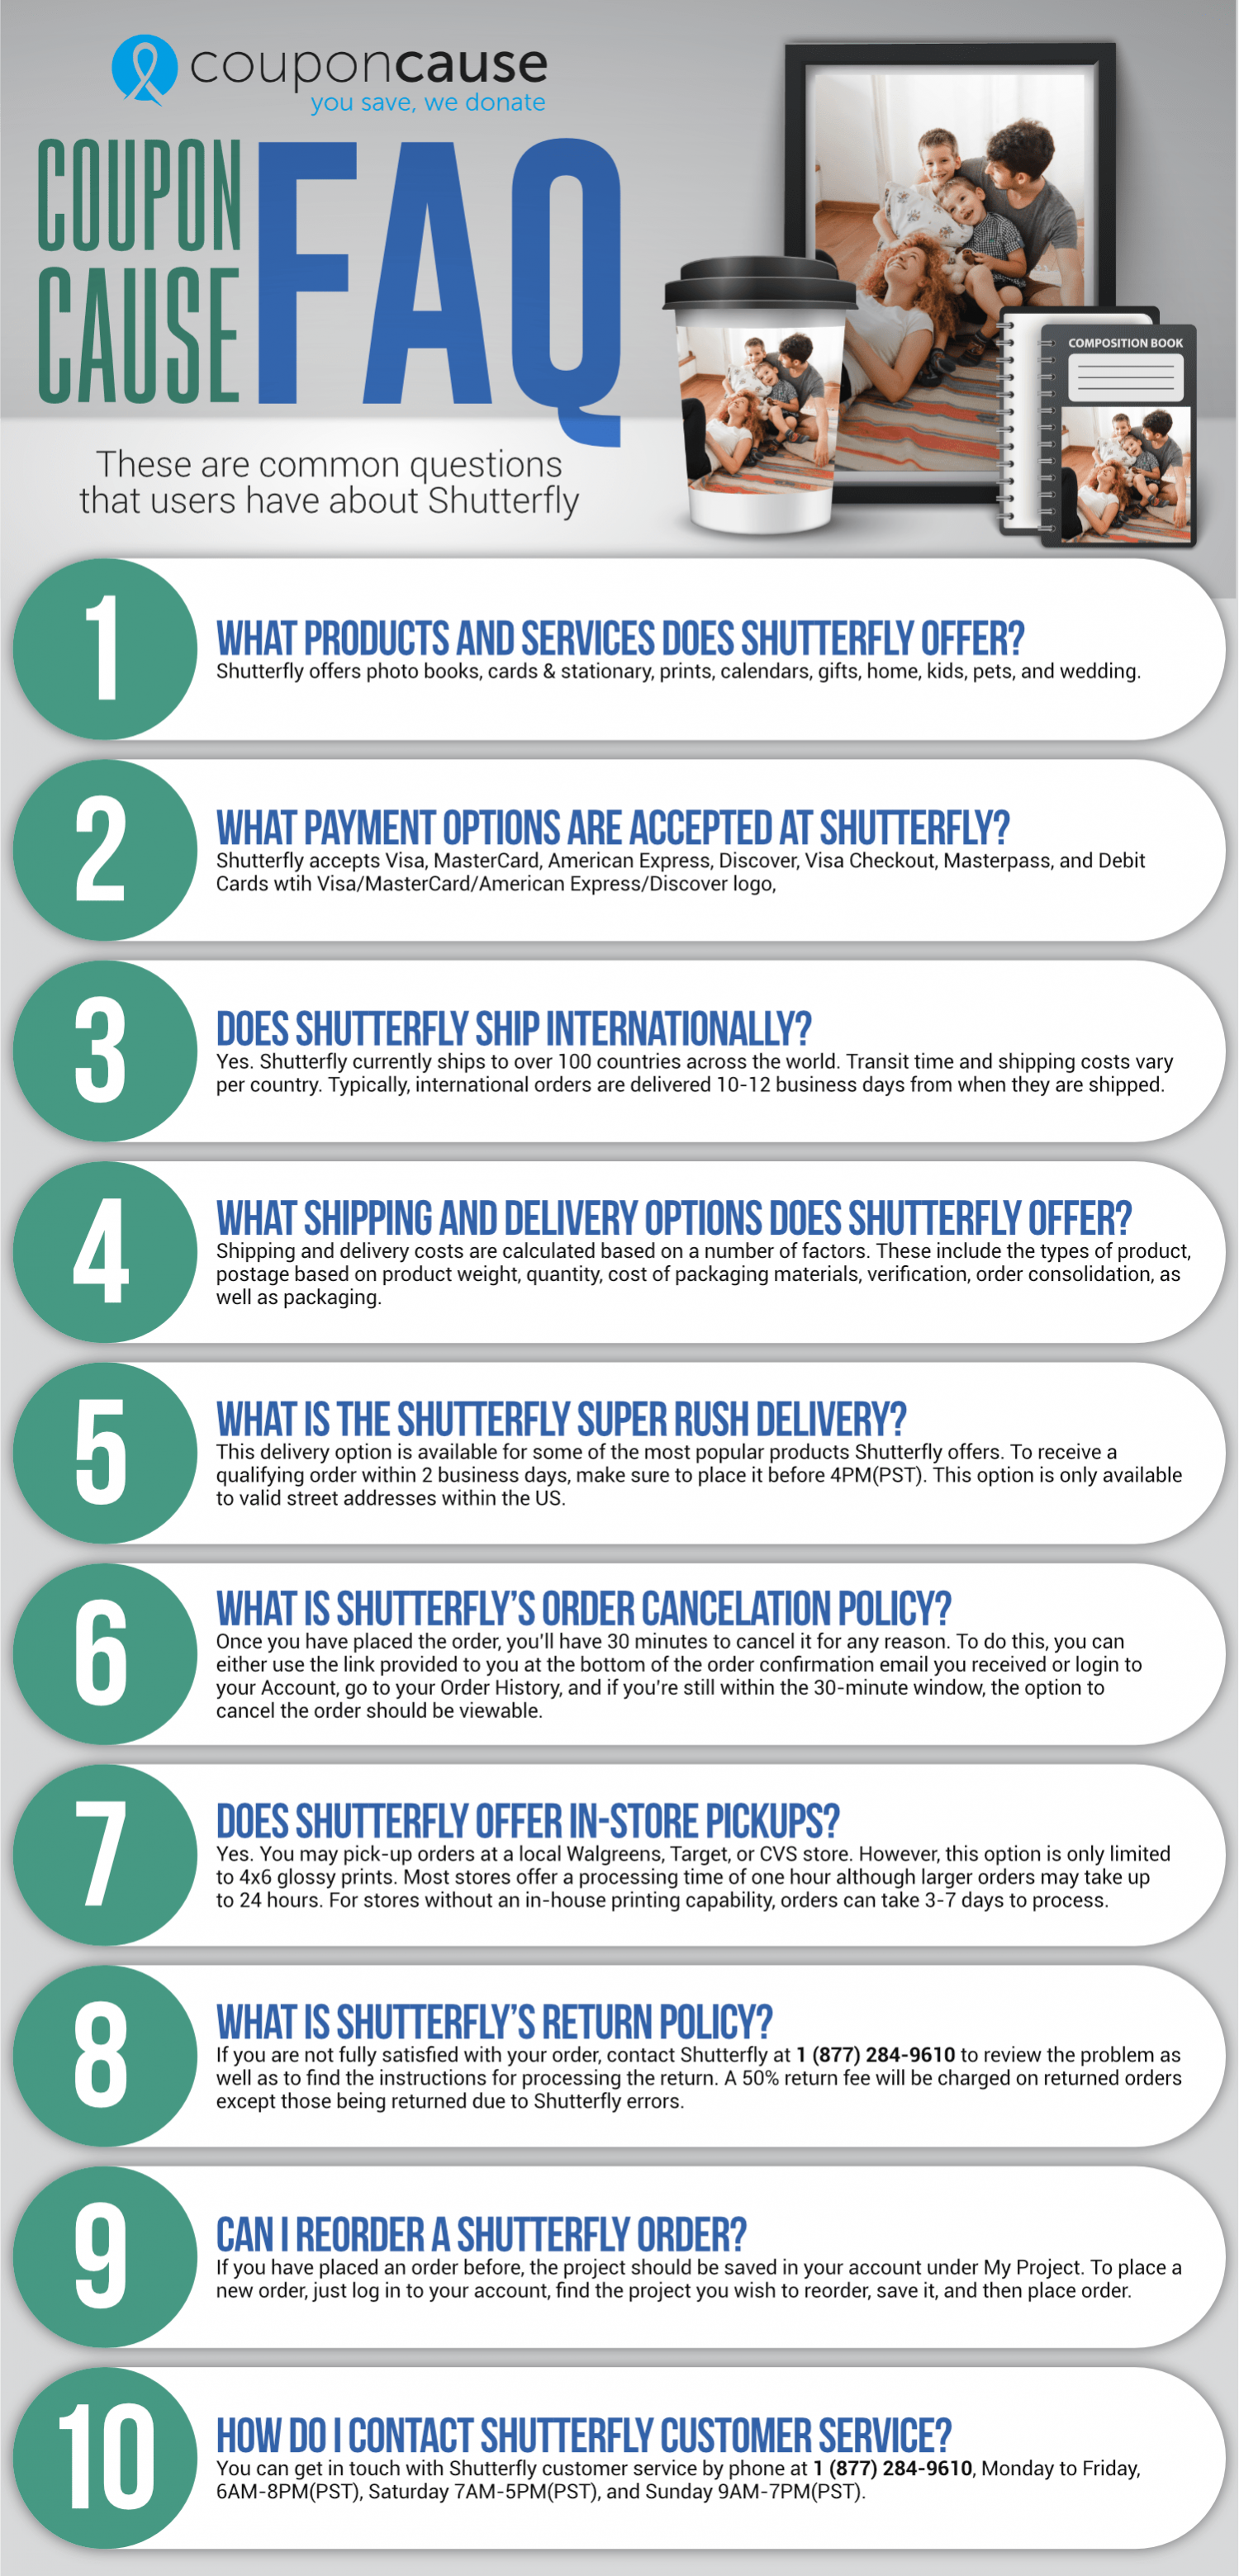 Shutterfly Infographic Order Coupon Cause FAQ (C.C. FAQ) Infographic